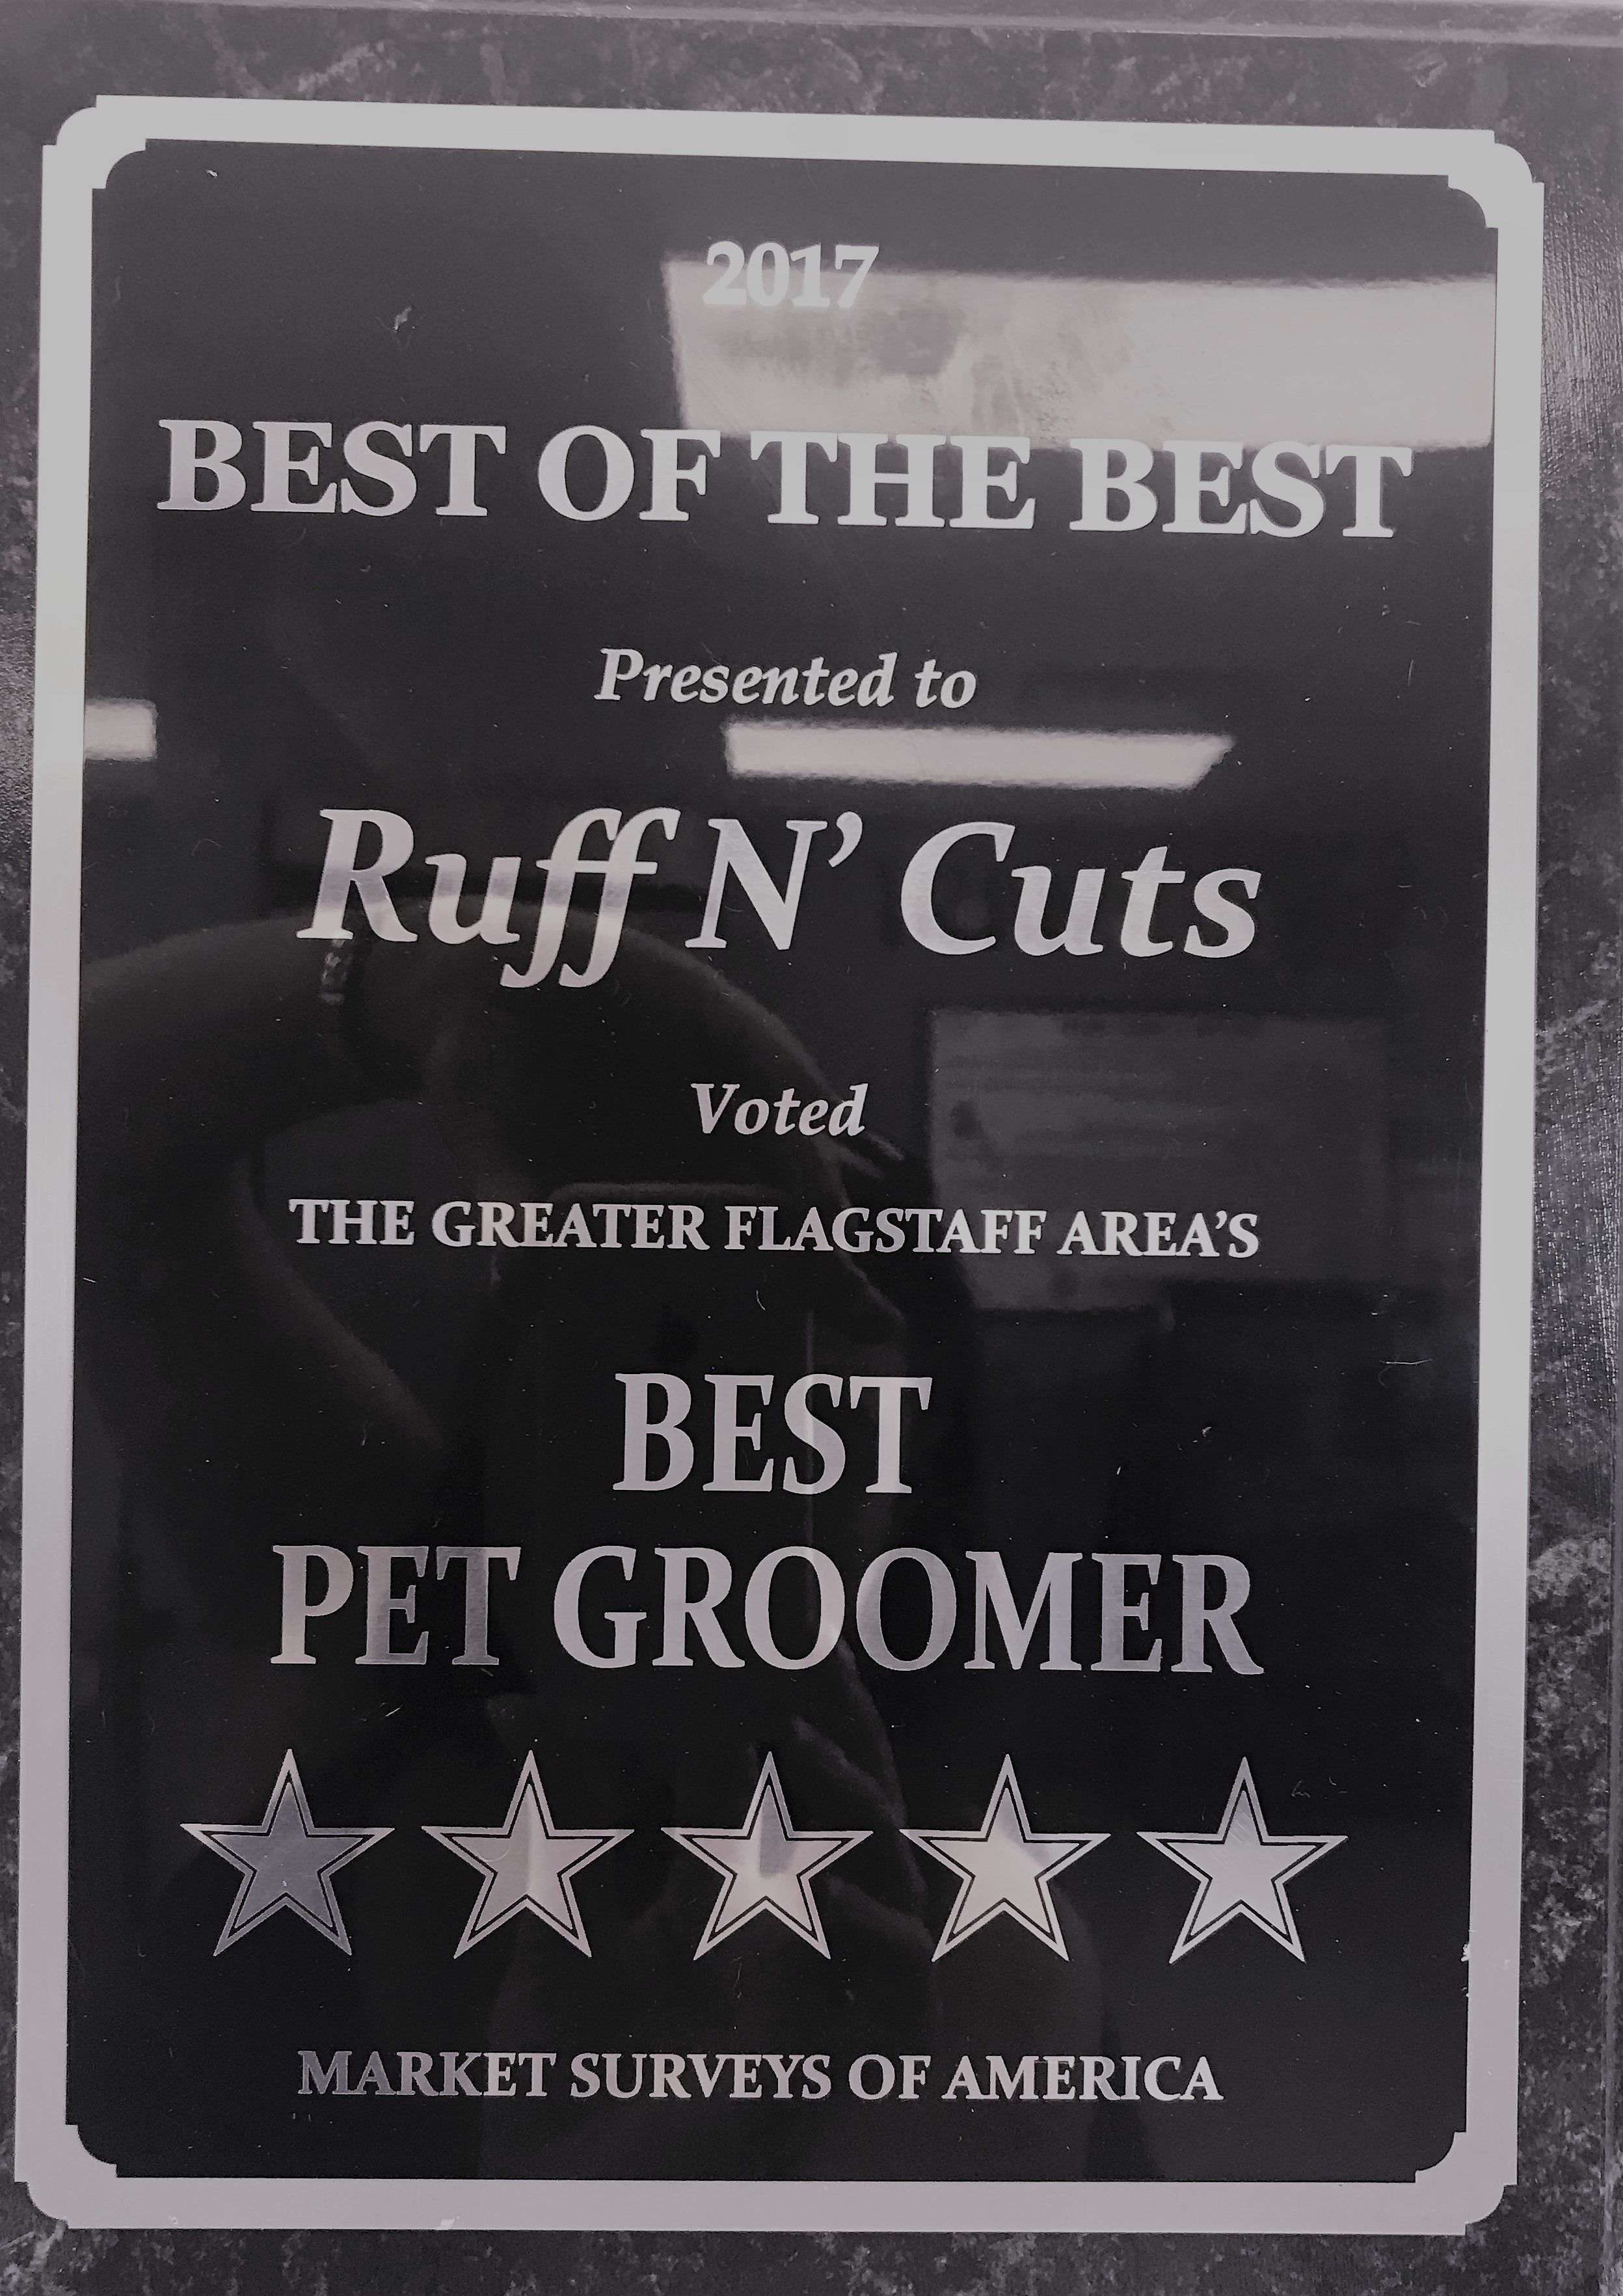 Ruff n cuts grooming salon and self serve dog wash 2616 n steves ruff n cuts grooming salon and self serve dog wash 2616 n steves blvd flagstaff az pet grooming mapquest solutioingenieria Gallery